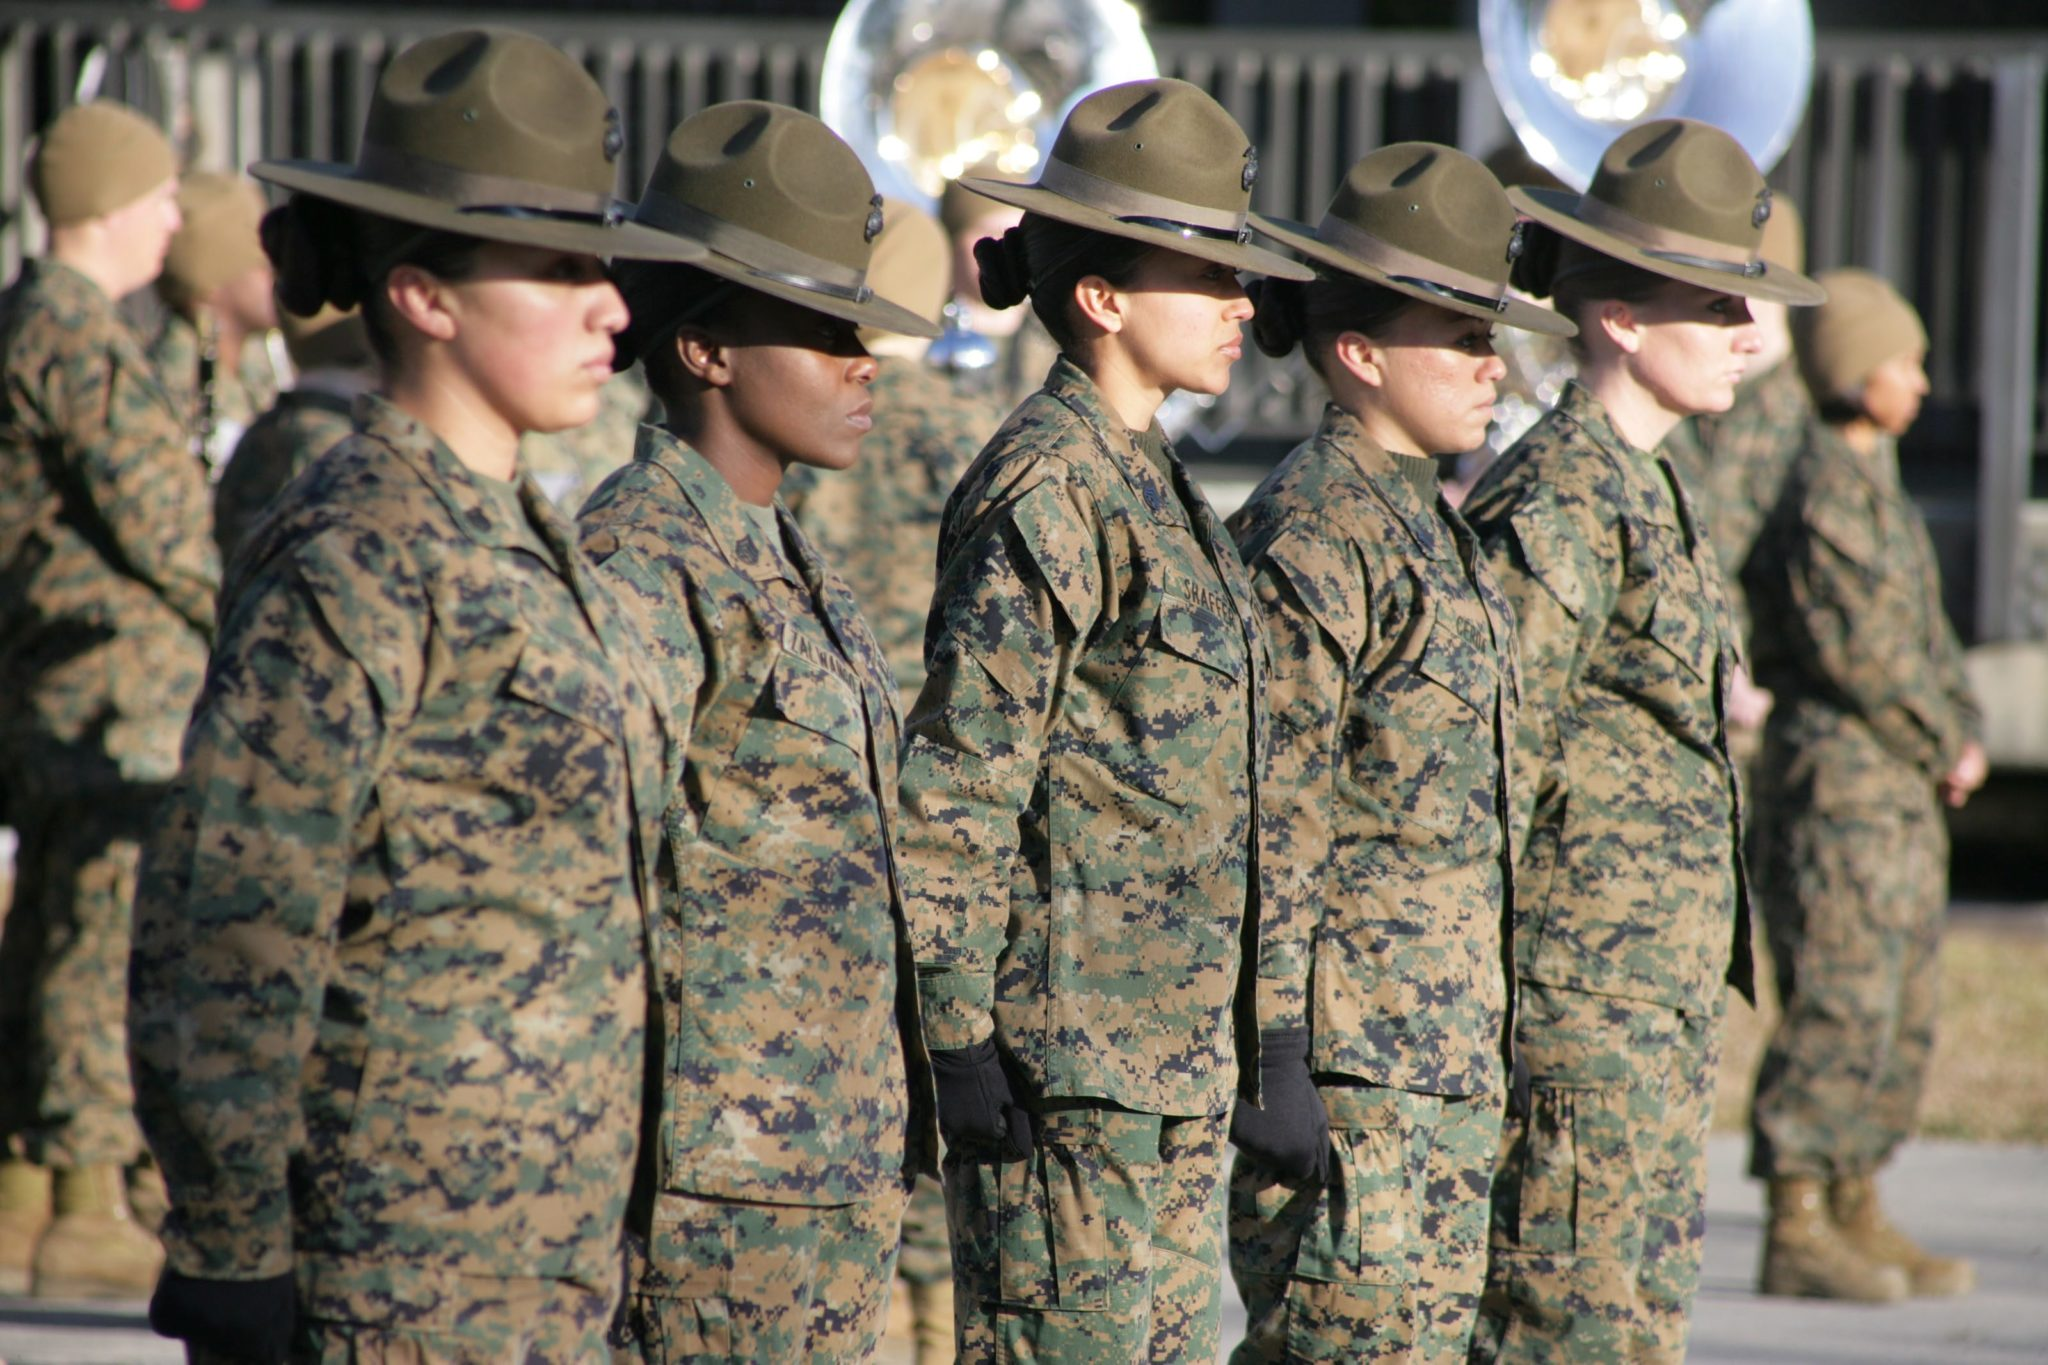 O.K. Ladies Now Let's Get in Formation (For Selective Service)